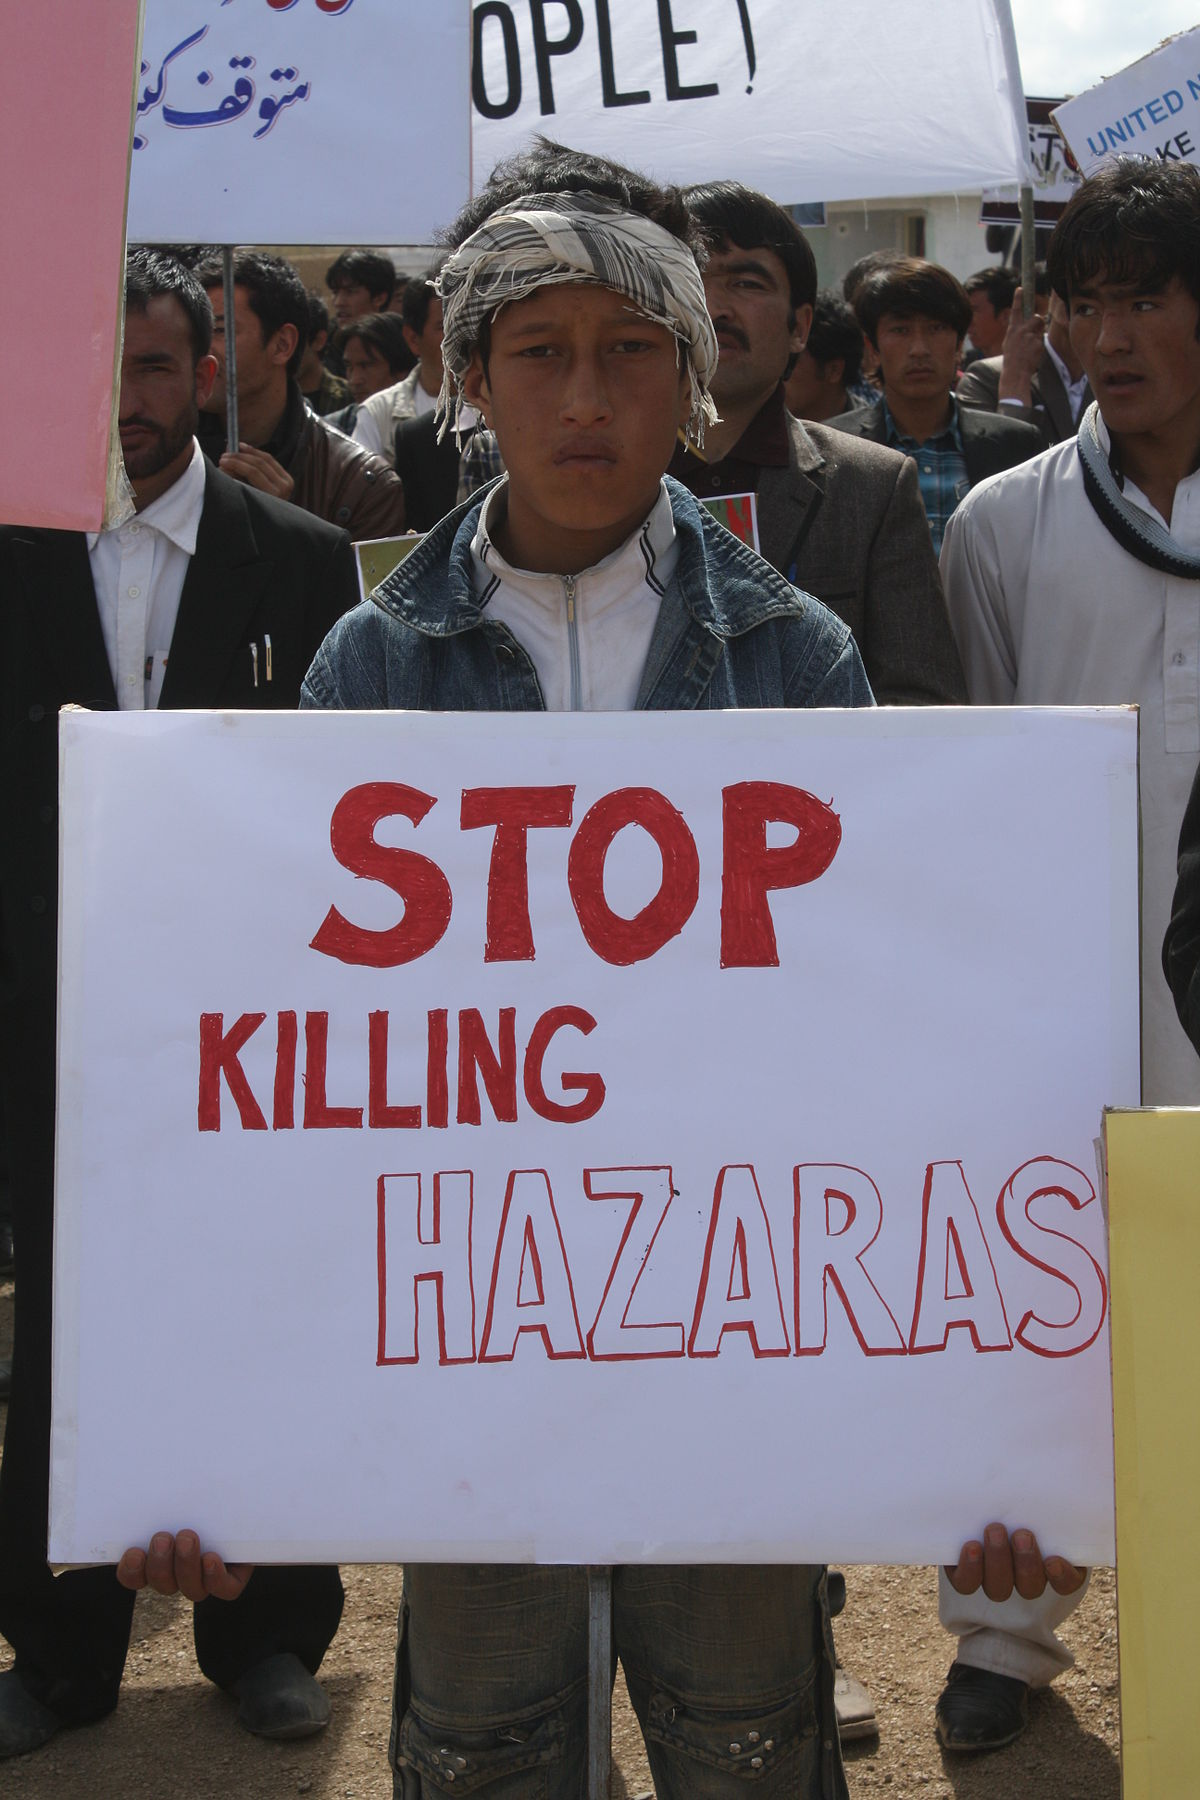 an arrangement of the discrimination against the hazara community In 1880, the hazara community comprised of landed nobility, peasants and   the shi'a hazaras are historically the most discriminated ethnic minority group in  the  mazari signed an agreement with the taliban leadership in 1993 but was.